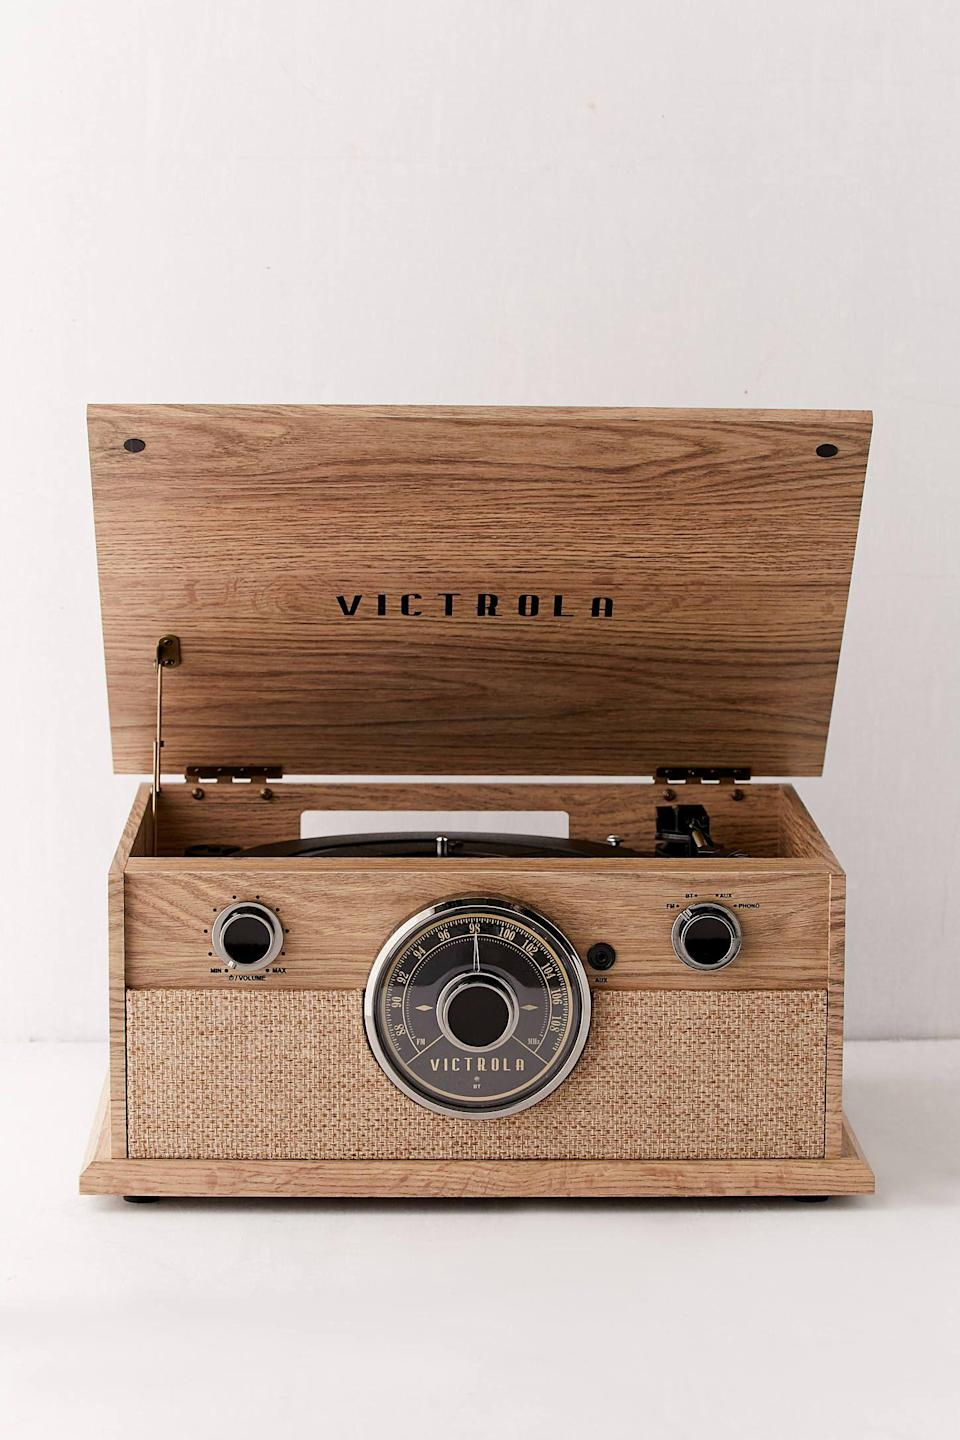 """<p><strong>Victrola</strong></p><p>urbanoutfitters.com</p><p><strong>$100.00</strong></p><p><a href=""""https://go.redirectingat.com?id=74968X1596630&url=https%3A%2F%2Fwww.urbanoutfitters.com%2Fshop%2Fvictrola-4-in-1-bluetooth-record-player&sref=https%3A%2F%2Fwww.countryliving.com%2Fshopping%2Fgifts%2Fg24168813%2Fboyfriend-gift-ideas%2F"""" rel=""""nofollow noopener"""" target=""""_blank"""" data-ylk=""""slk:Shop Now"""" class=""""link rapid-noclick-resp"""">Shop Now</a></p><p>This vintage-inspired record player will be a major upgrade from his current speaker system.</p>"""